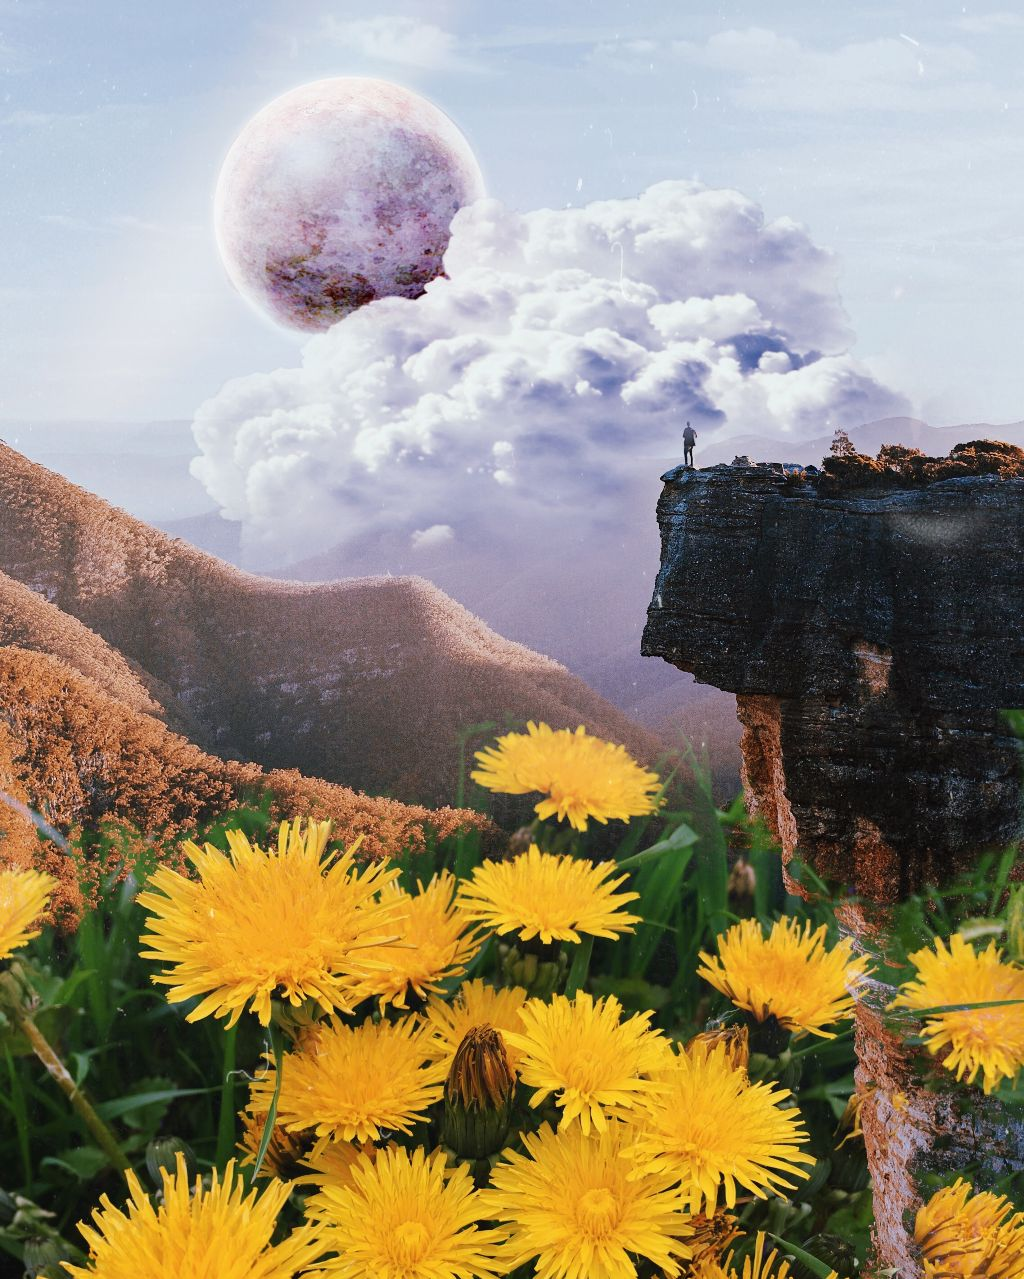 #freetoedit #fantasy #art #mountains #planet #flowers #sky #clouds